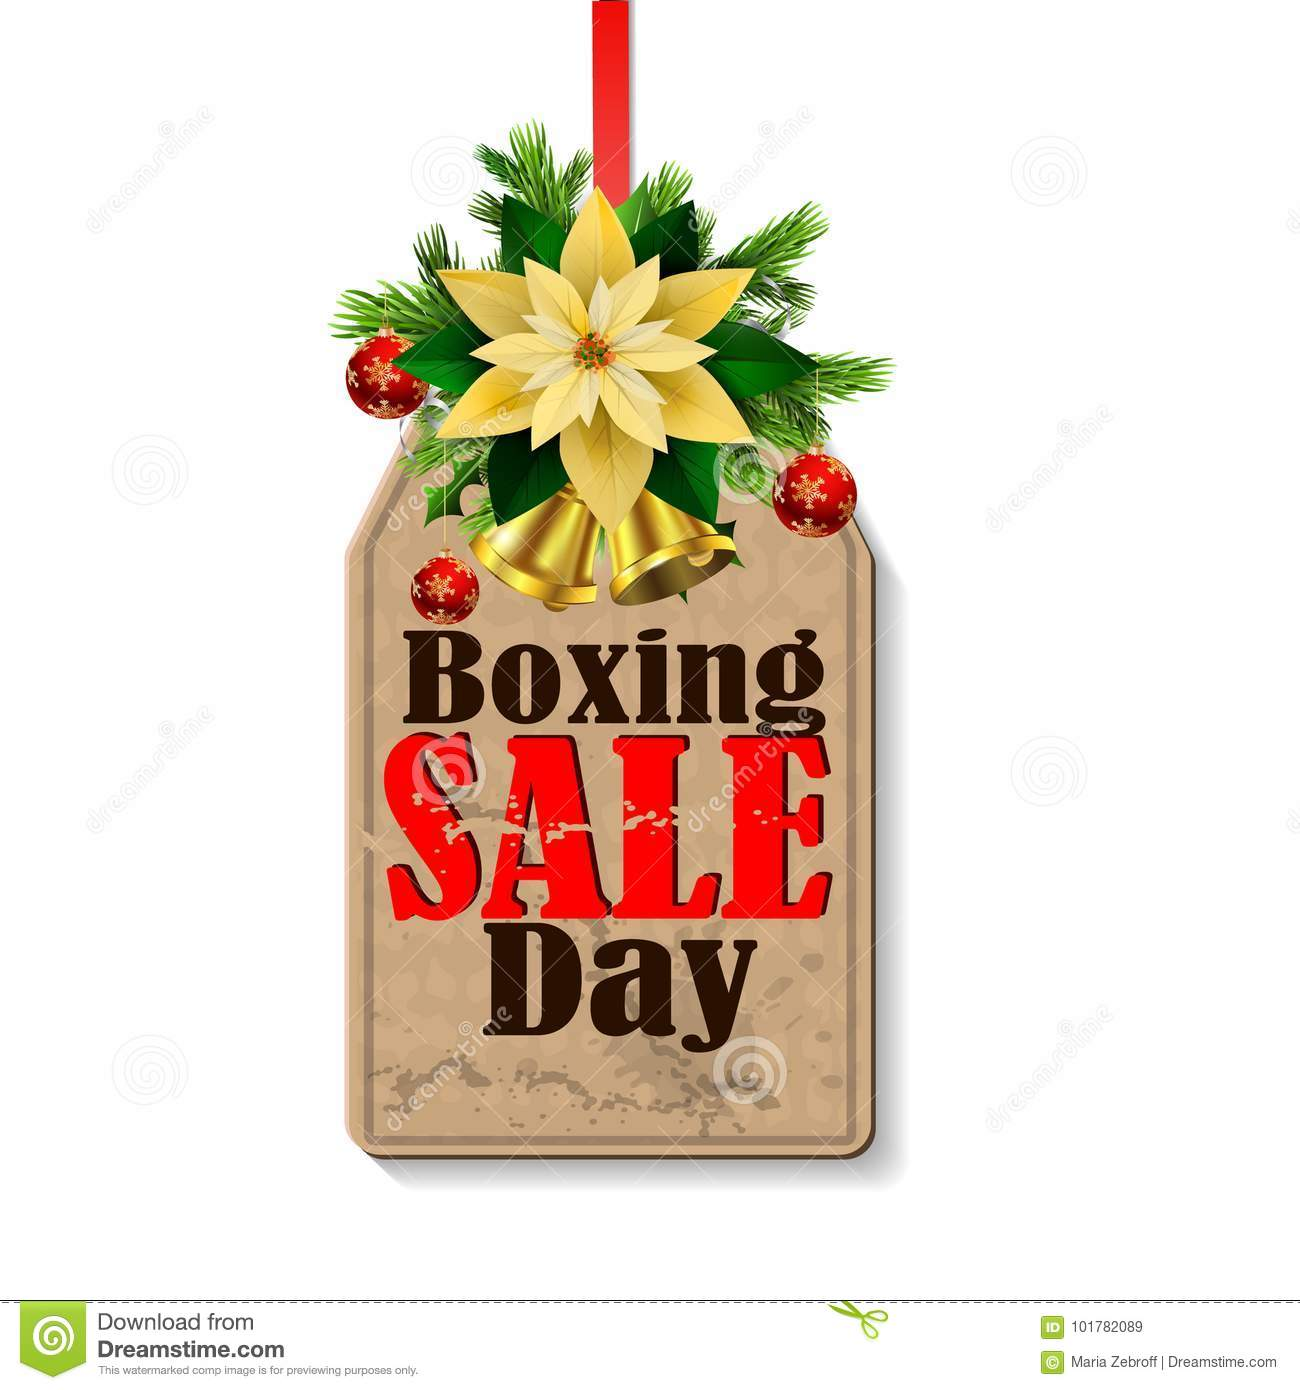 Boxing day tag stock vector. Illustration of clipart.